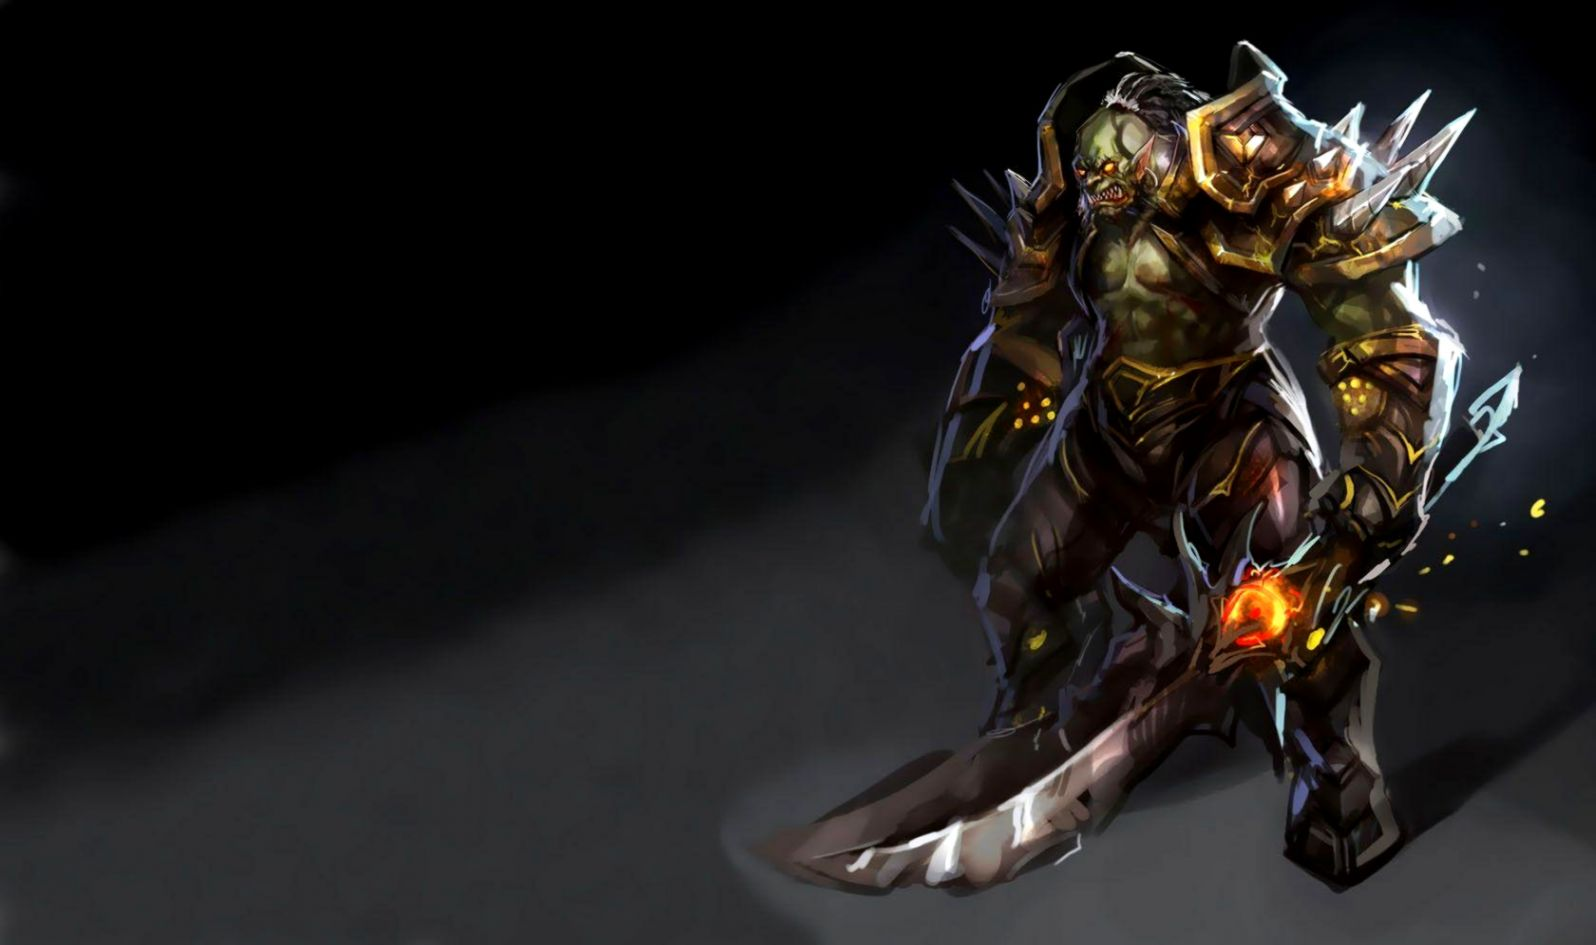 World Of Warcraft Orc Fighter Wallpaper Wallpapers Heroes